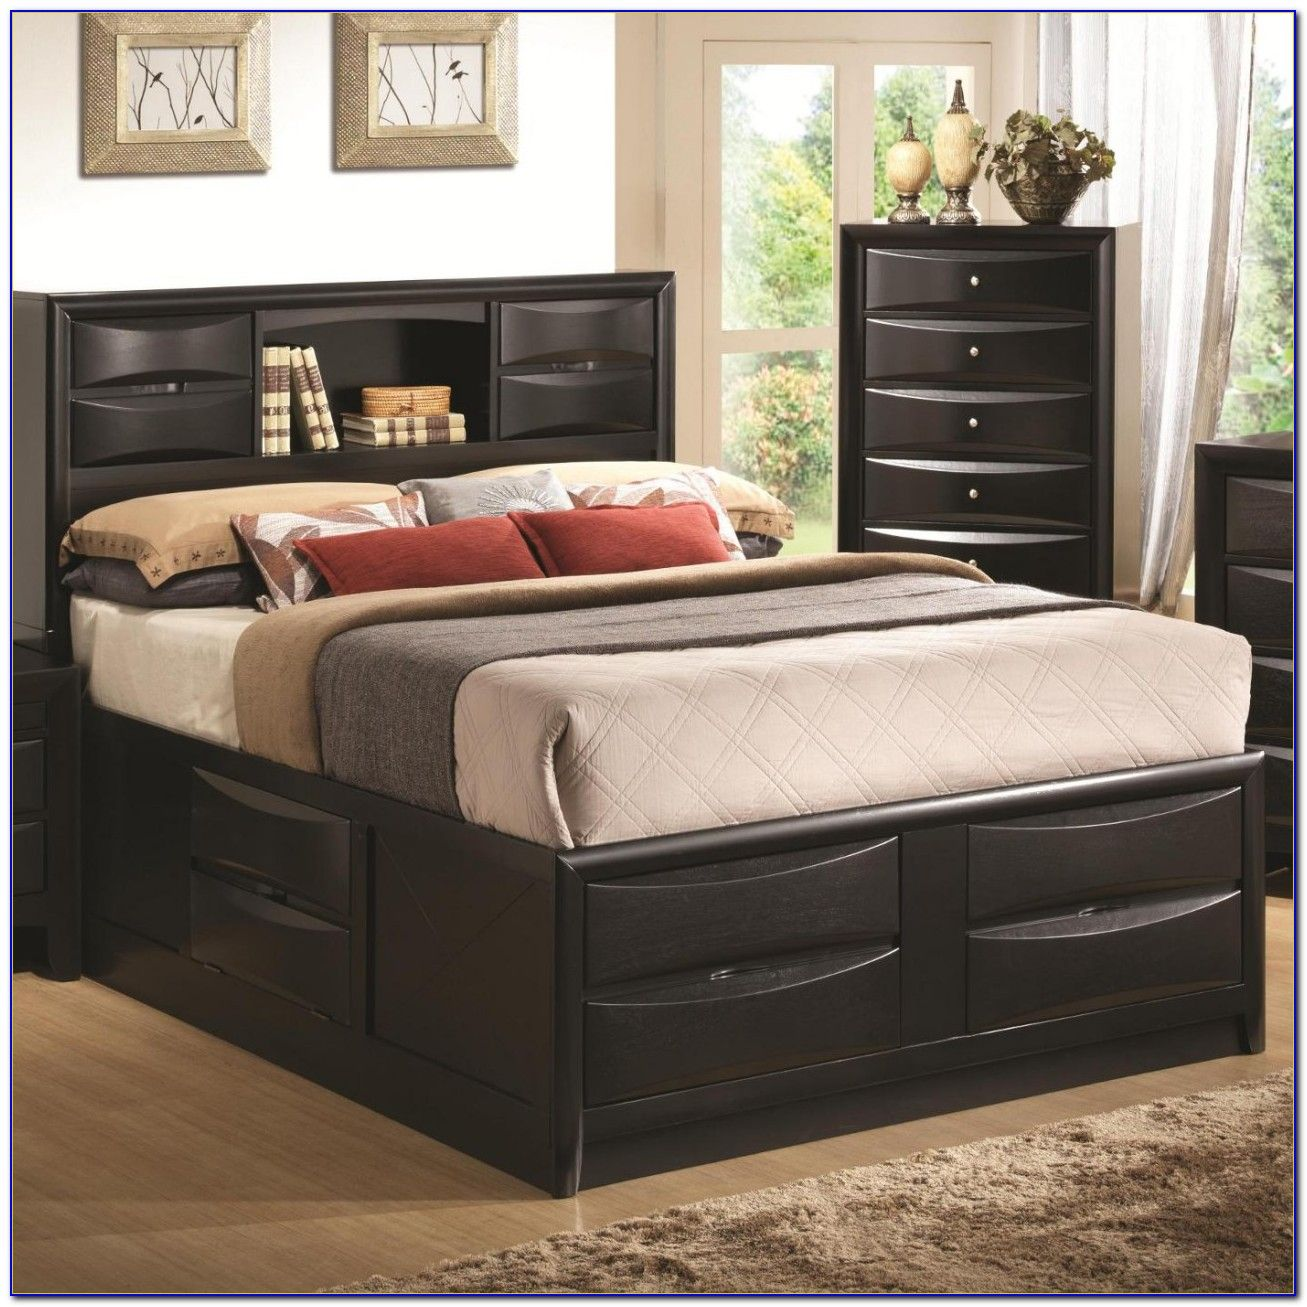 Bedroom Wooden Double Bed With Storage